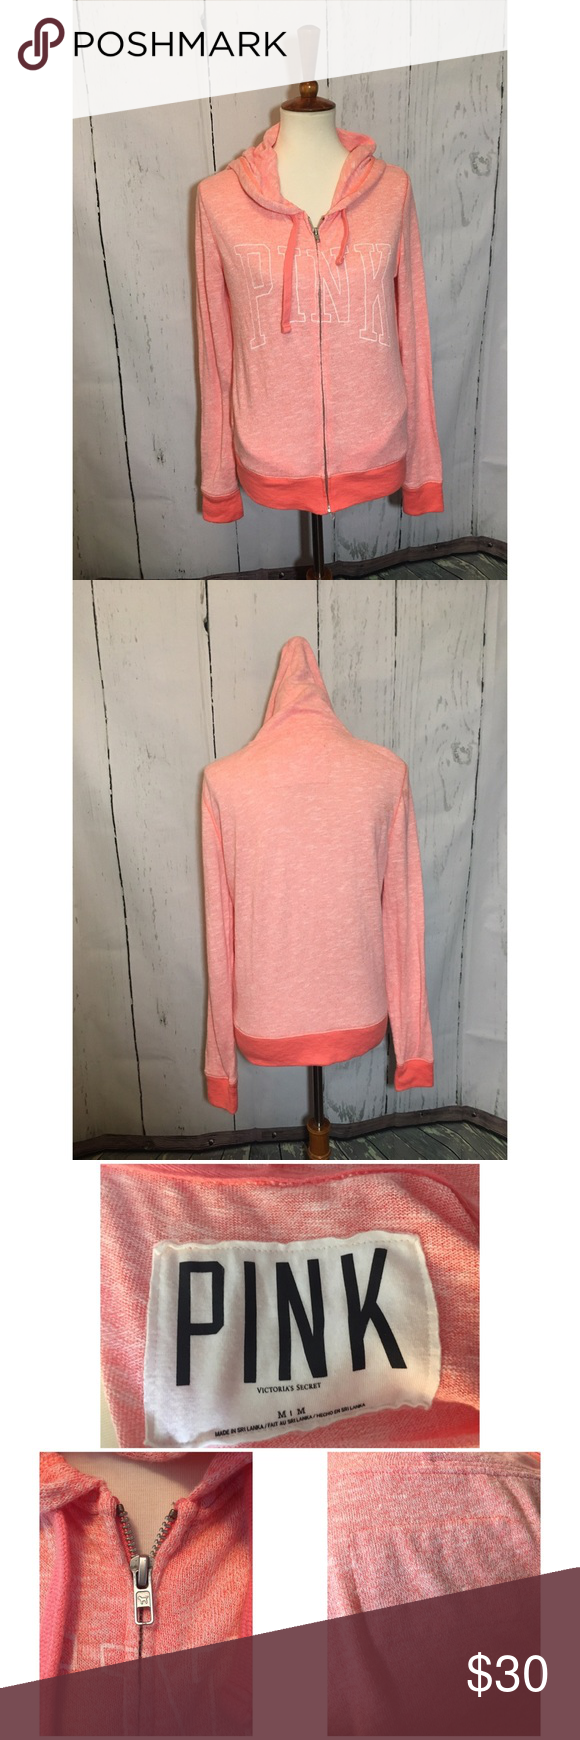 Coral PINK zip up sweater size M Cute PINK sweatshirt in such a ...